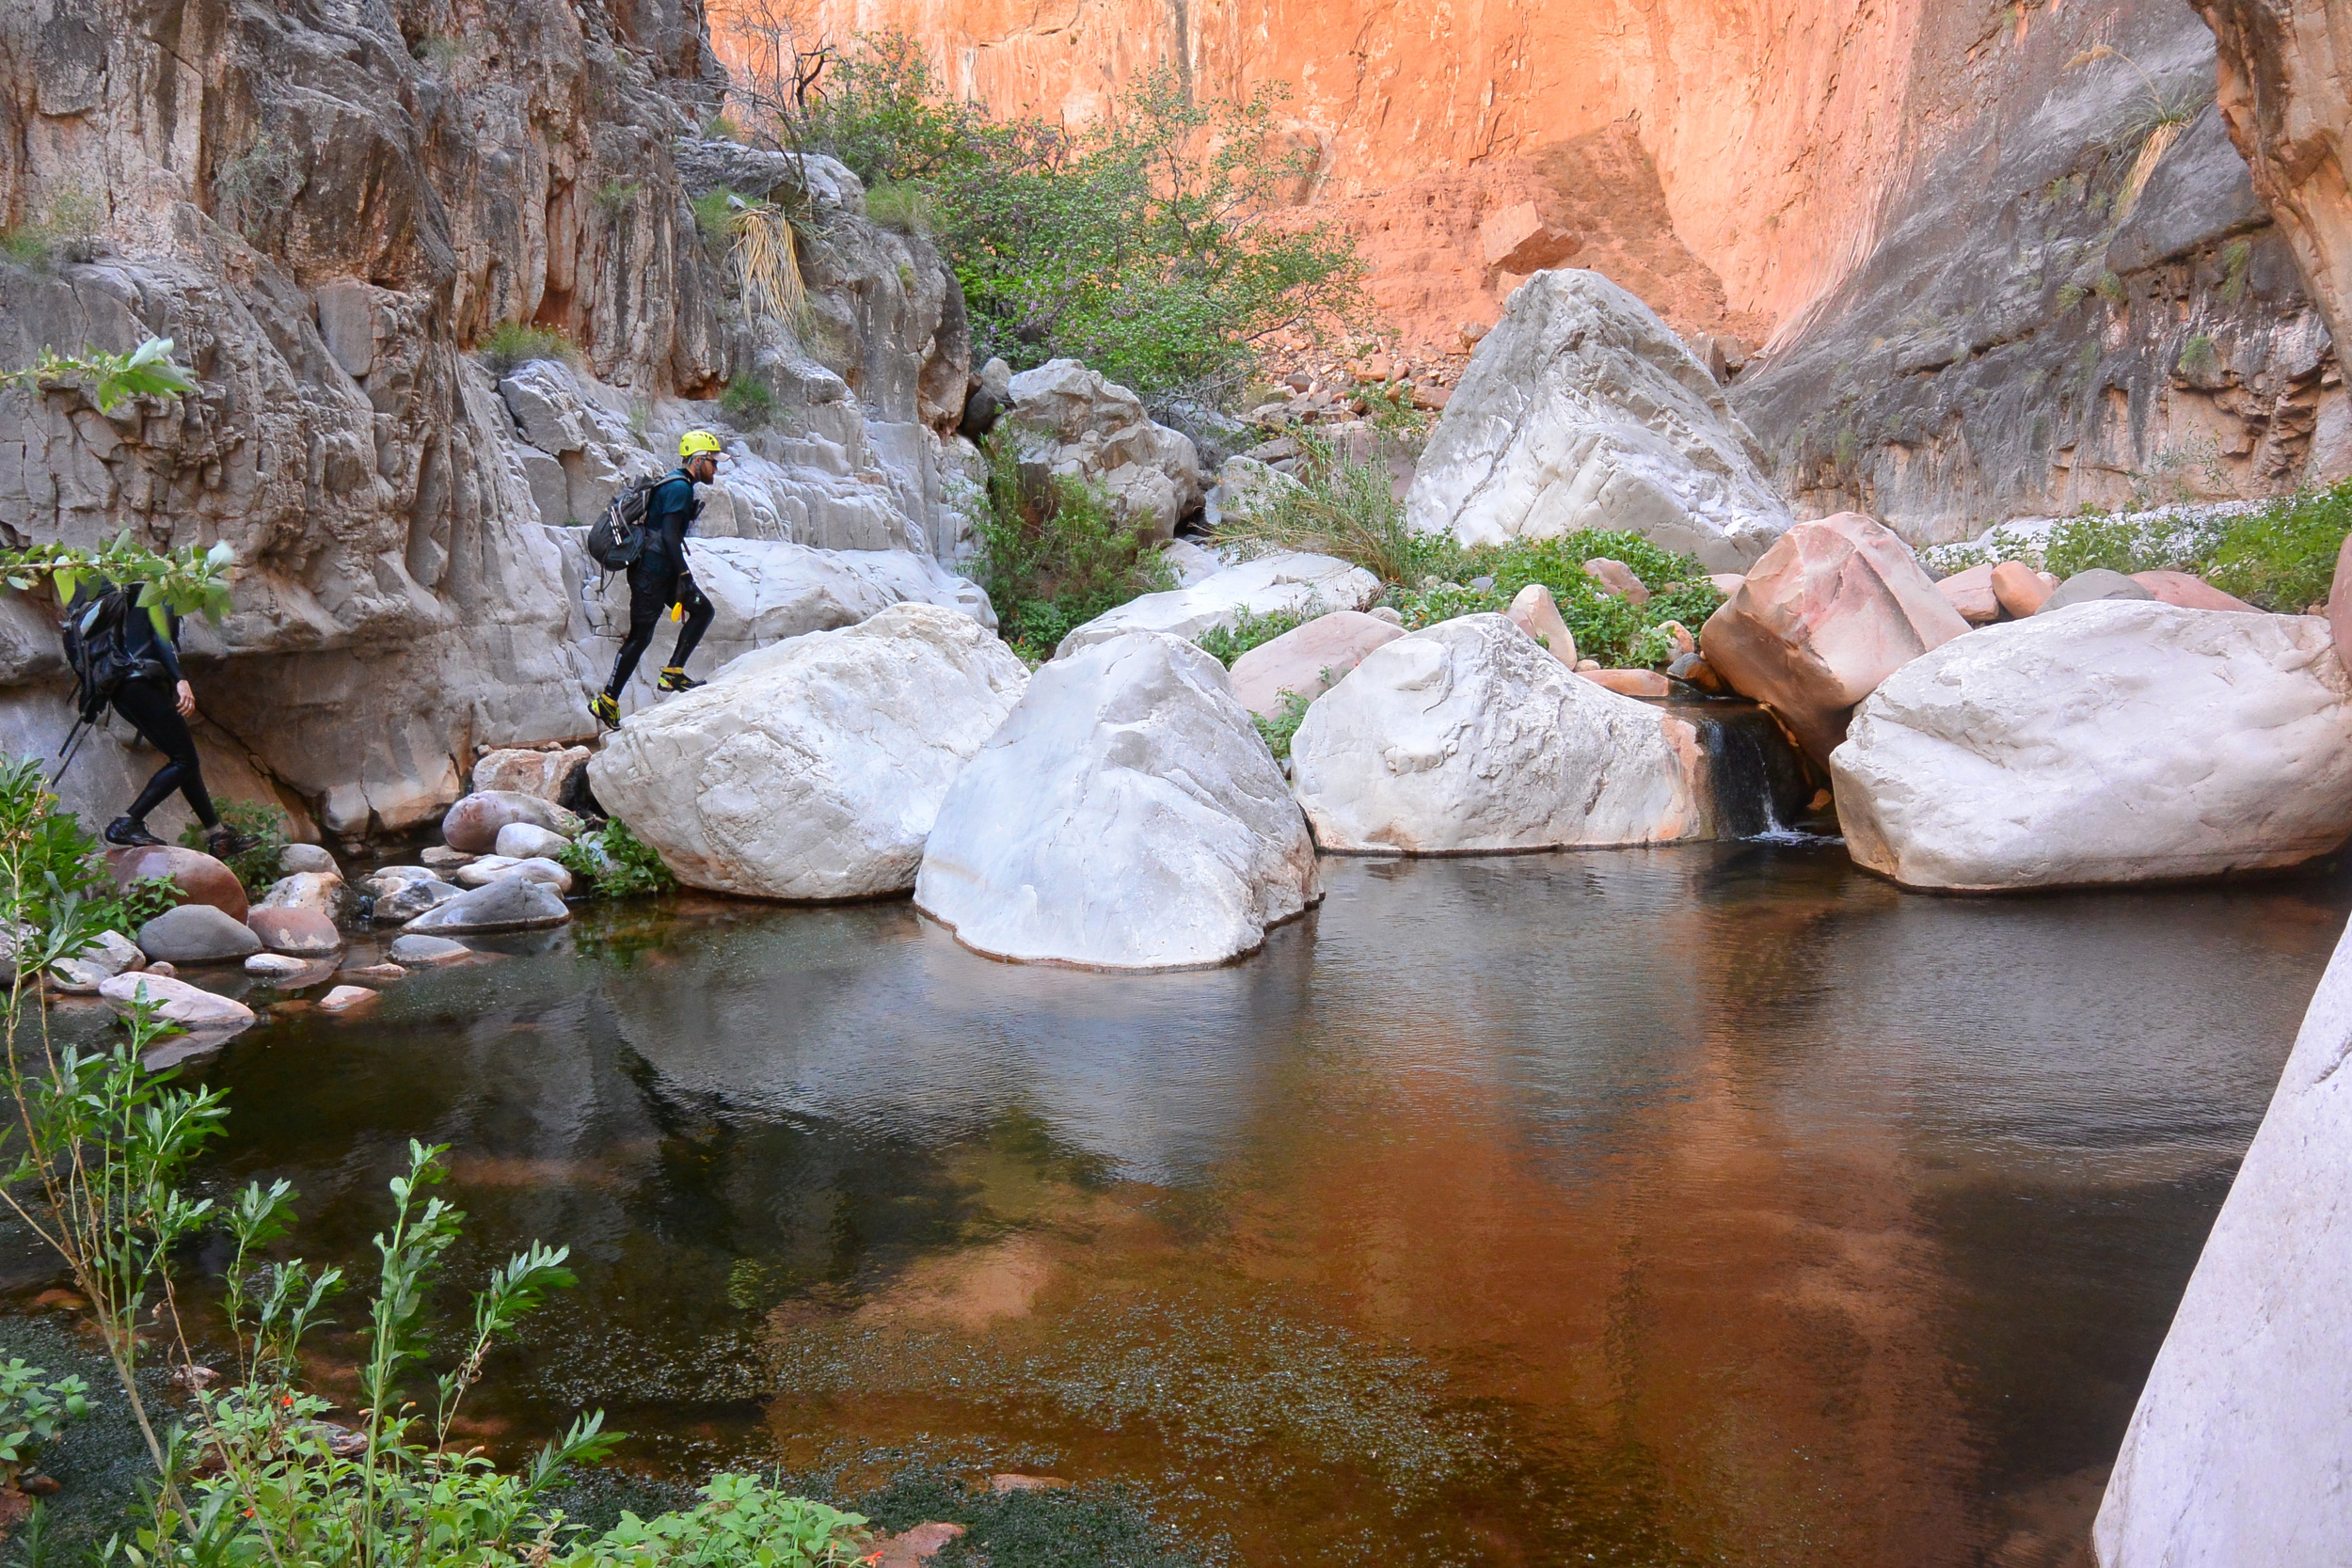 Canyoneer Rich Rudow and his crew exploring one of many slot canyons in the Grand Canyon. Mr. Rudow contributes photos and georeference data to SSI and is also on the Board of Directors of the Coalition of American Canyoneers.